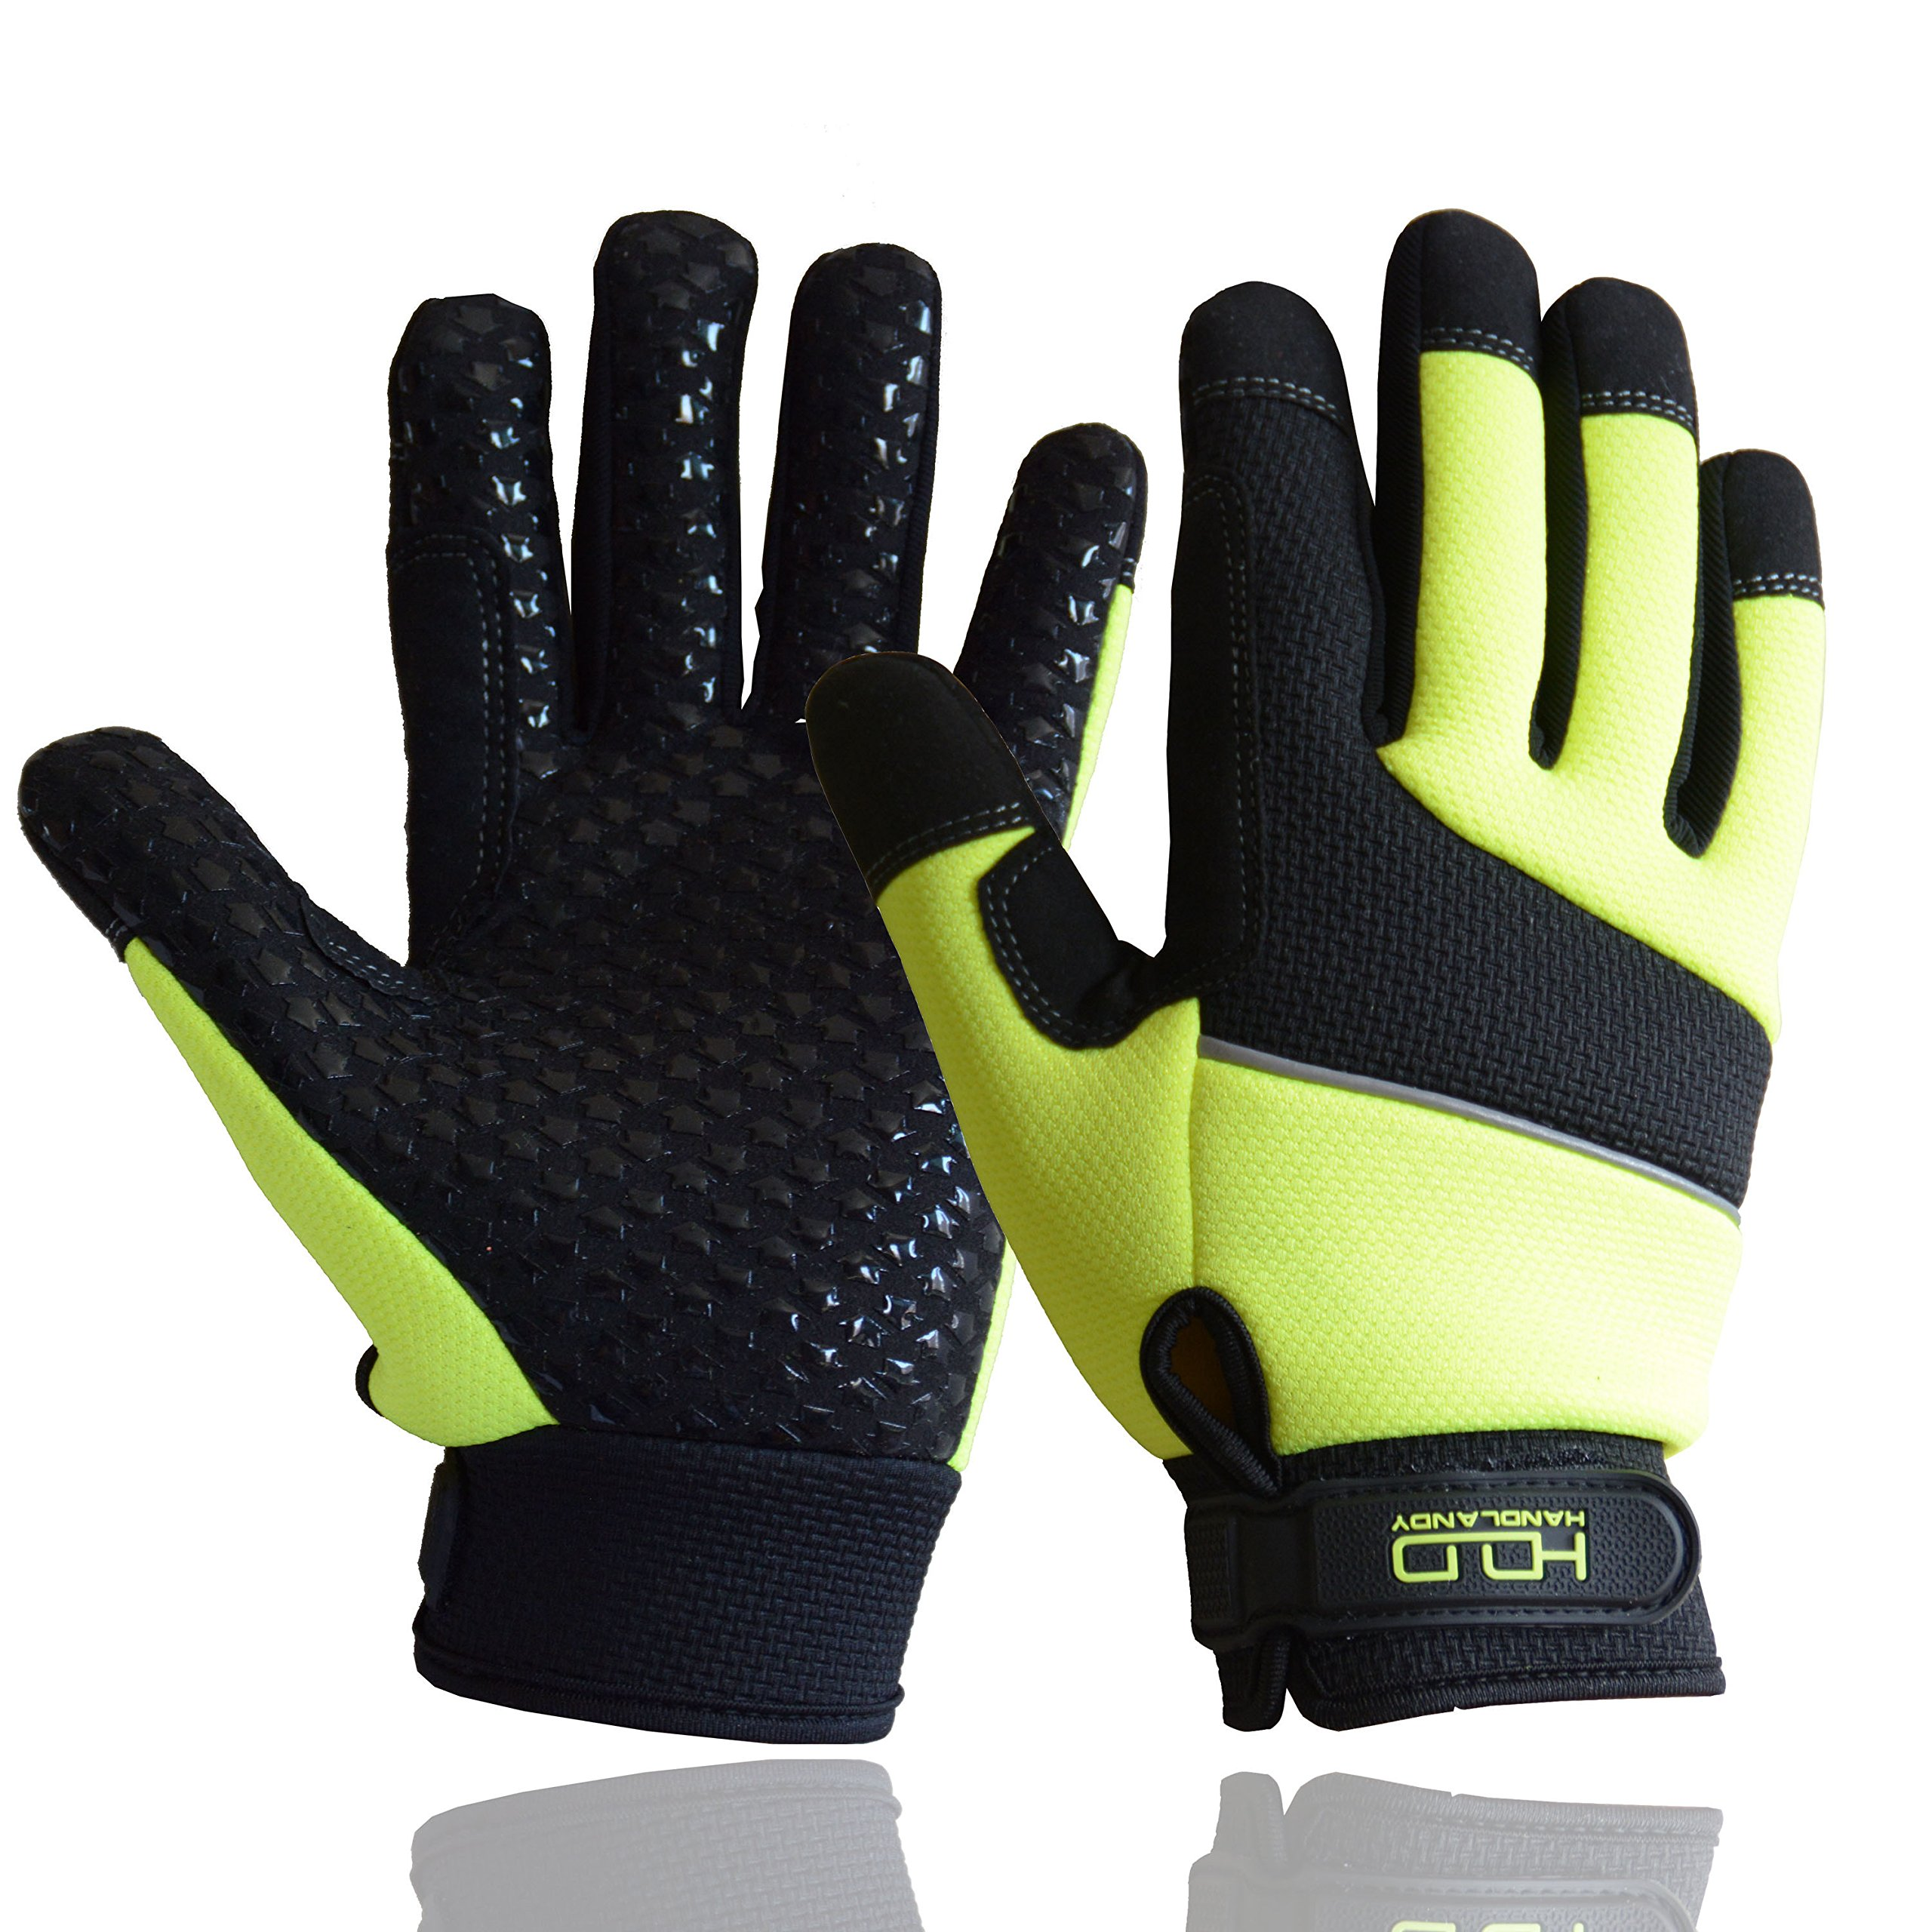 HI-VIS Safety Work Gloves Cut Resistance Level 5 Heavy Utility Firm Grip Mechanic Working Gloves Reflective Yellow (Large)